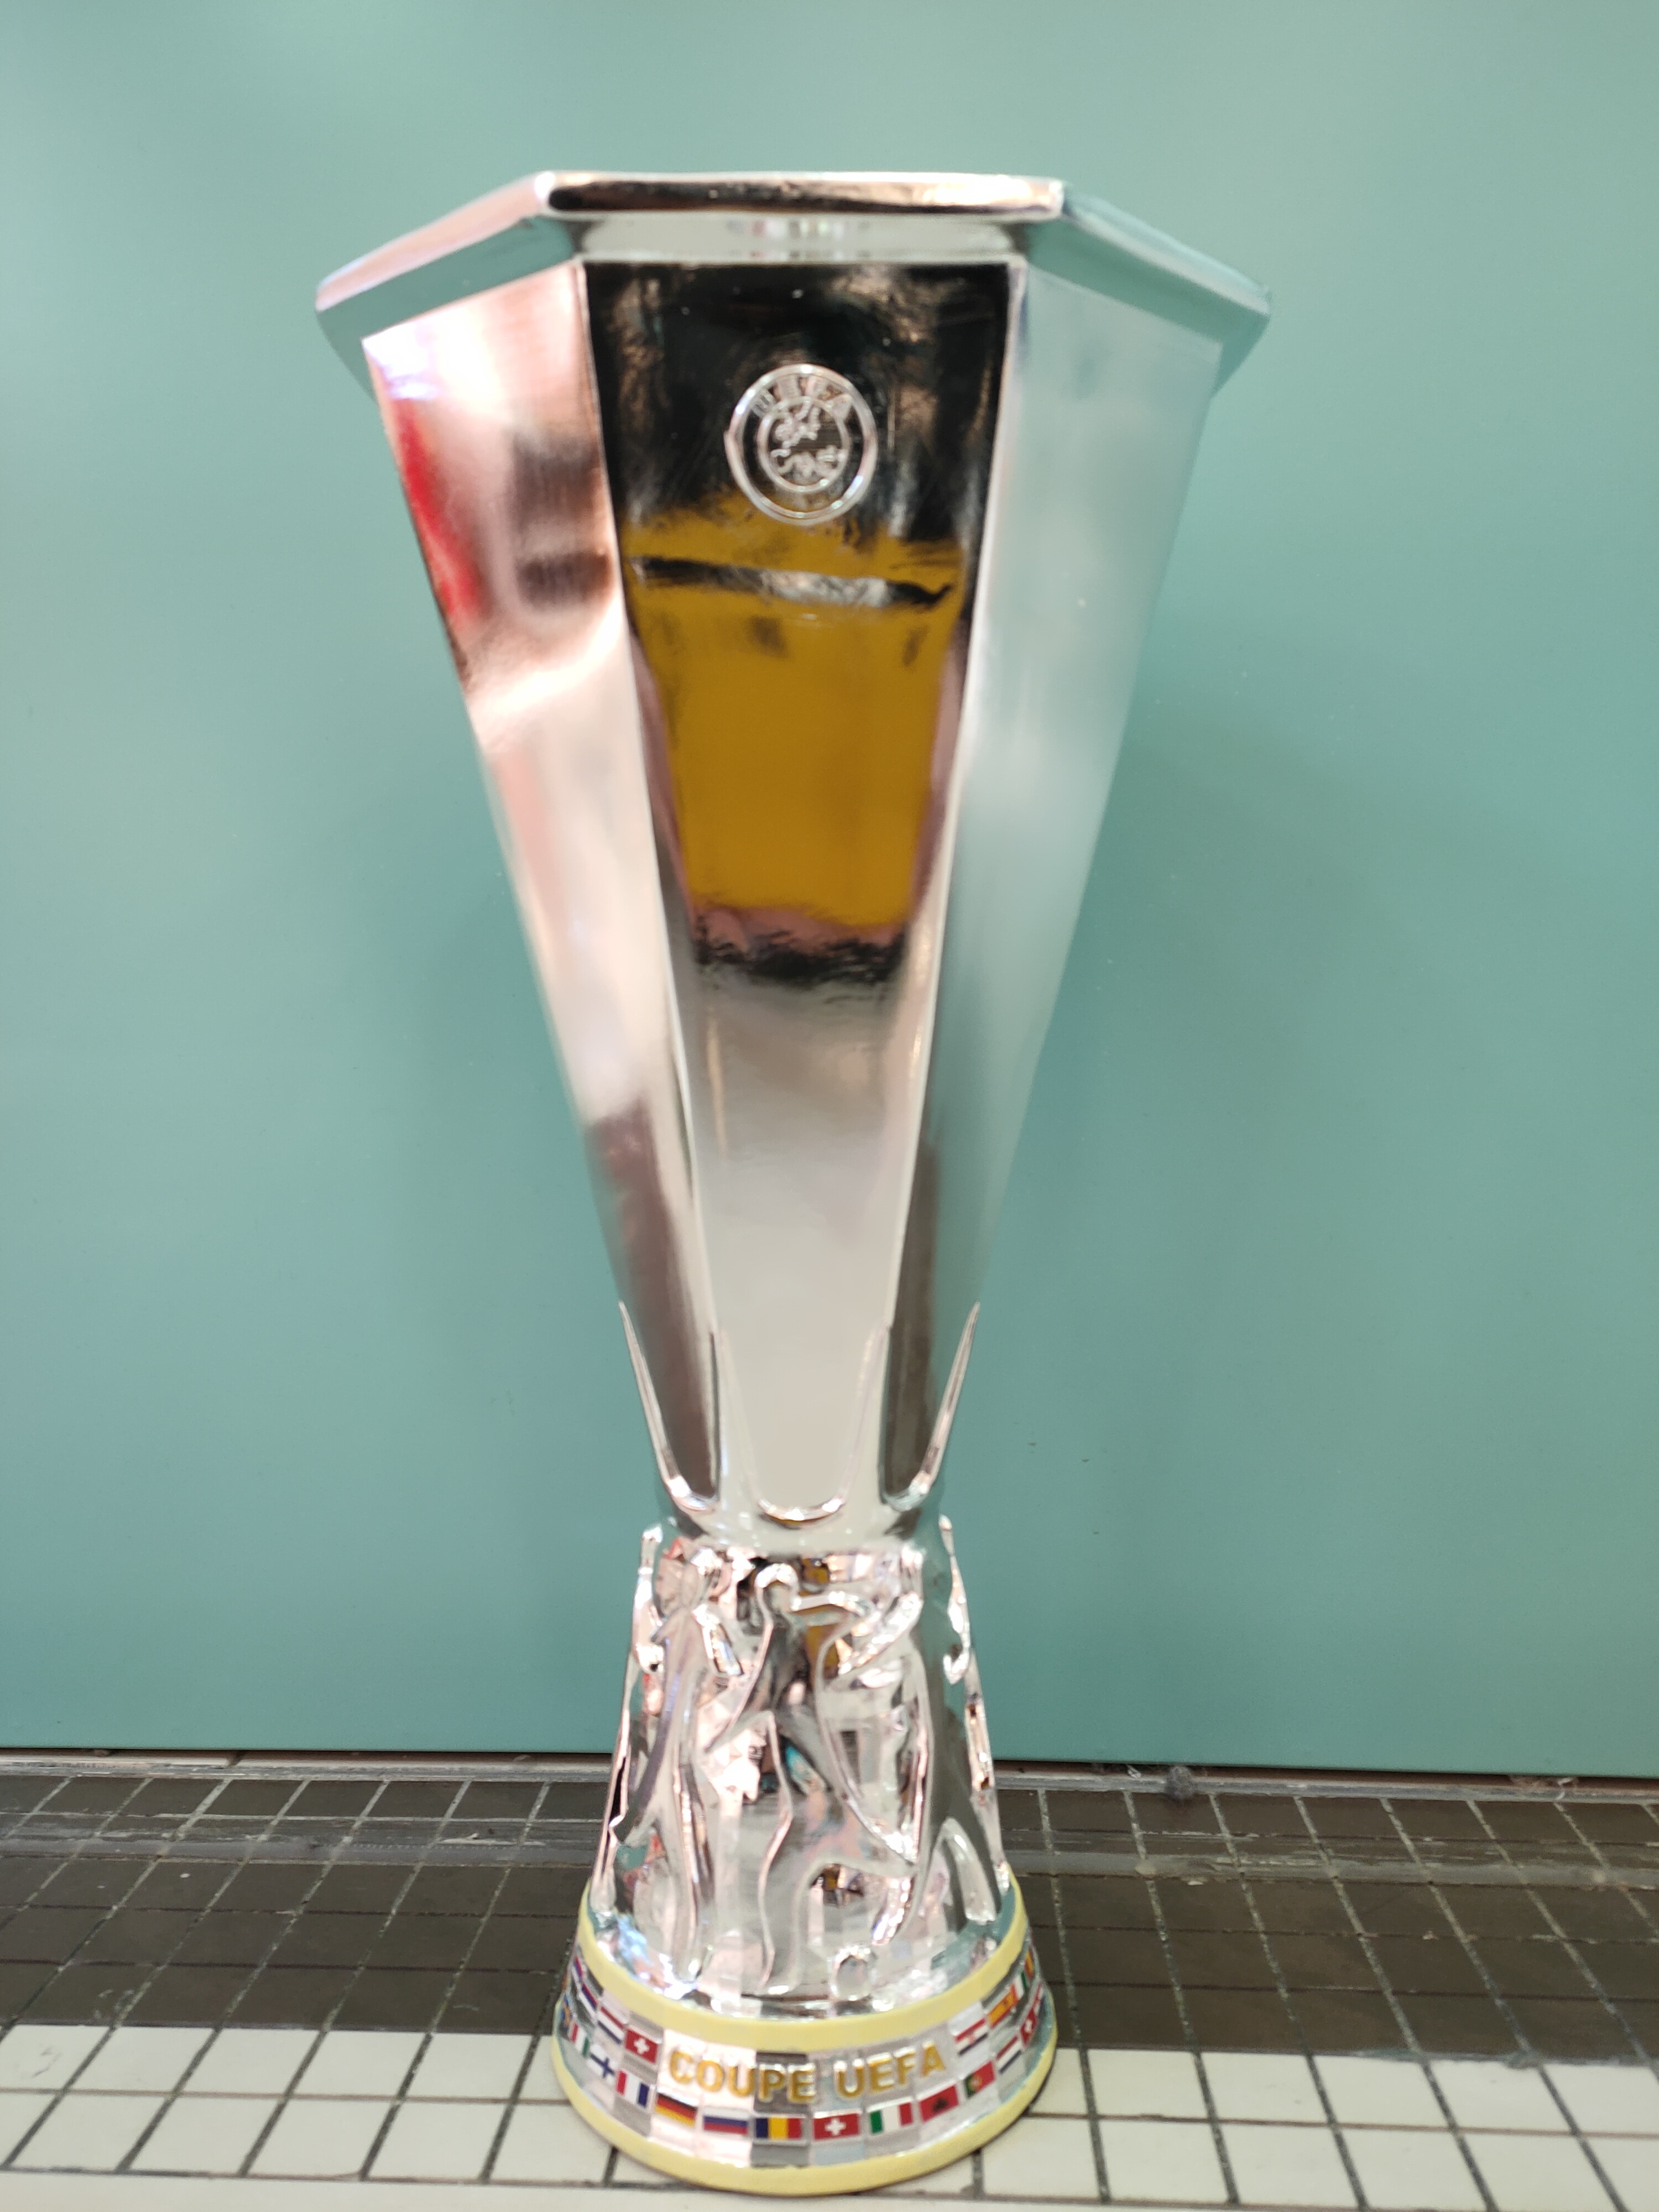 Trophy-Cup Souvenirs Soccer Award Europa League Bertoni The Gift for Nice